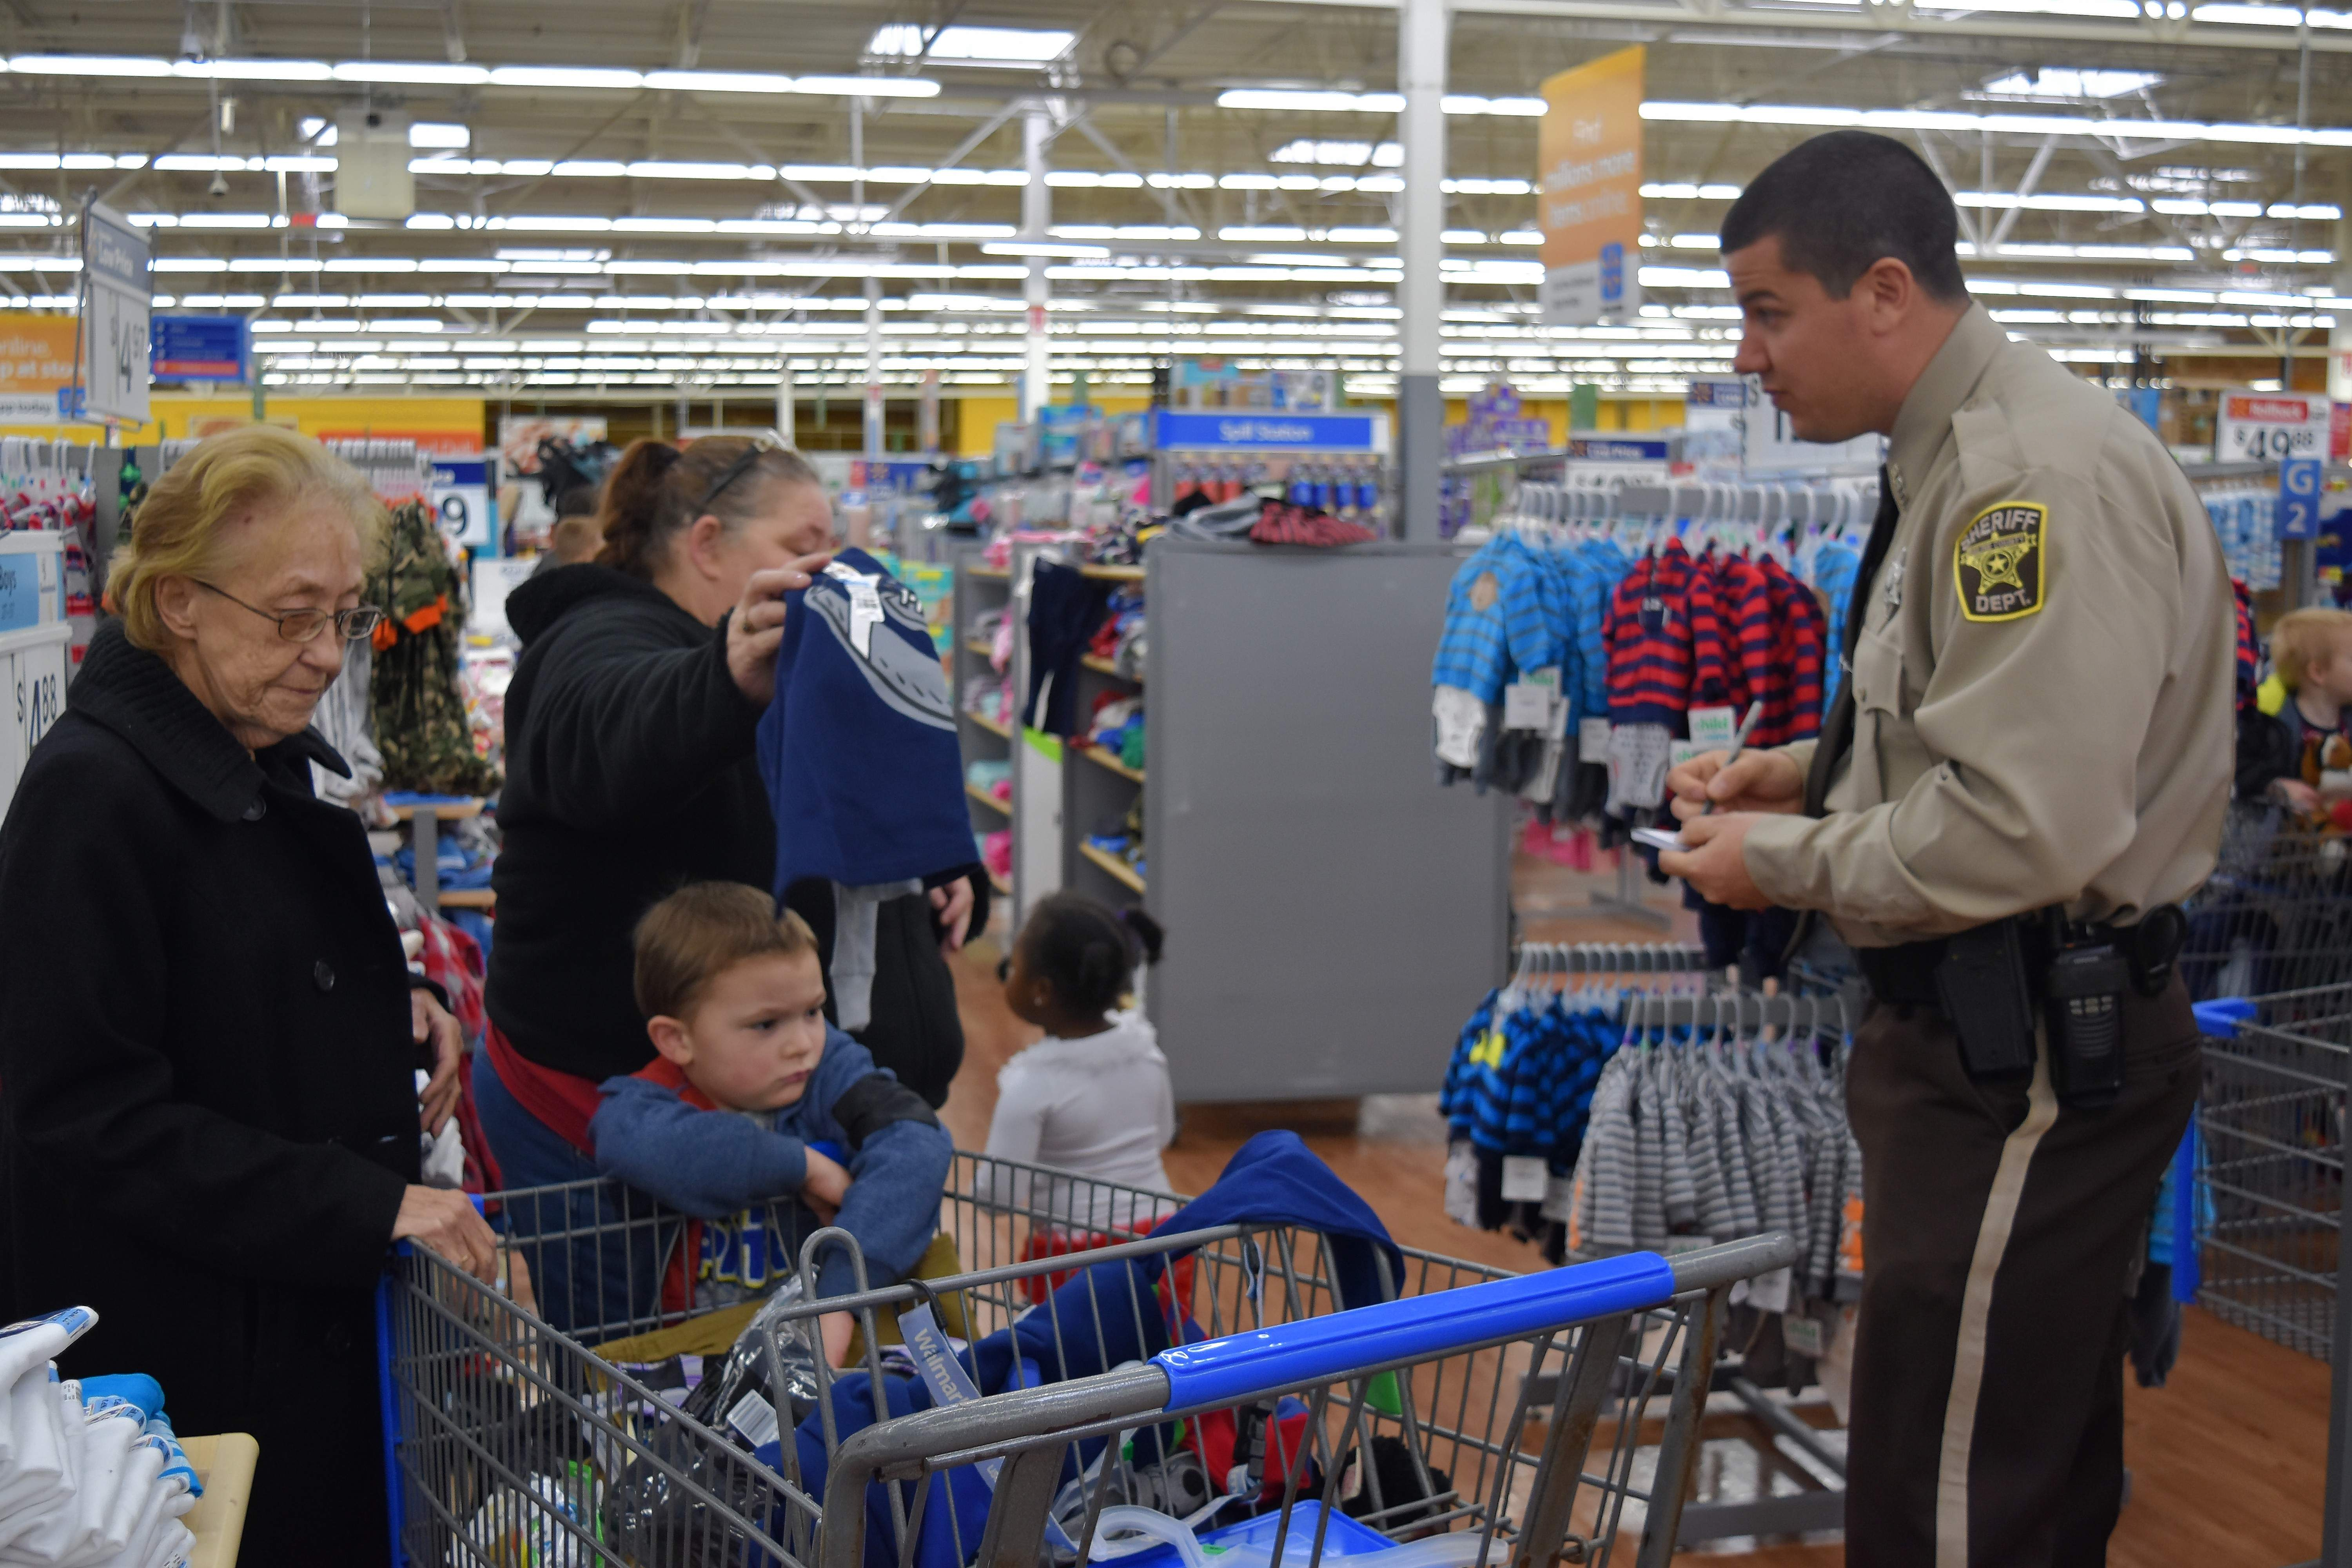 Saline County Deputy Craig Williams helps total a shopping list during Shop With a Cop Saturday at Wal-Mart in Harrisburg.